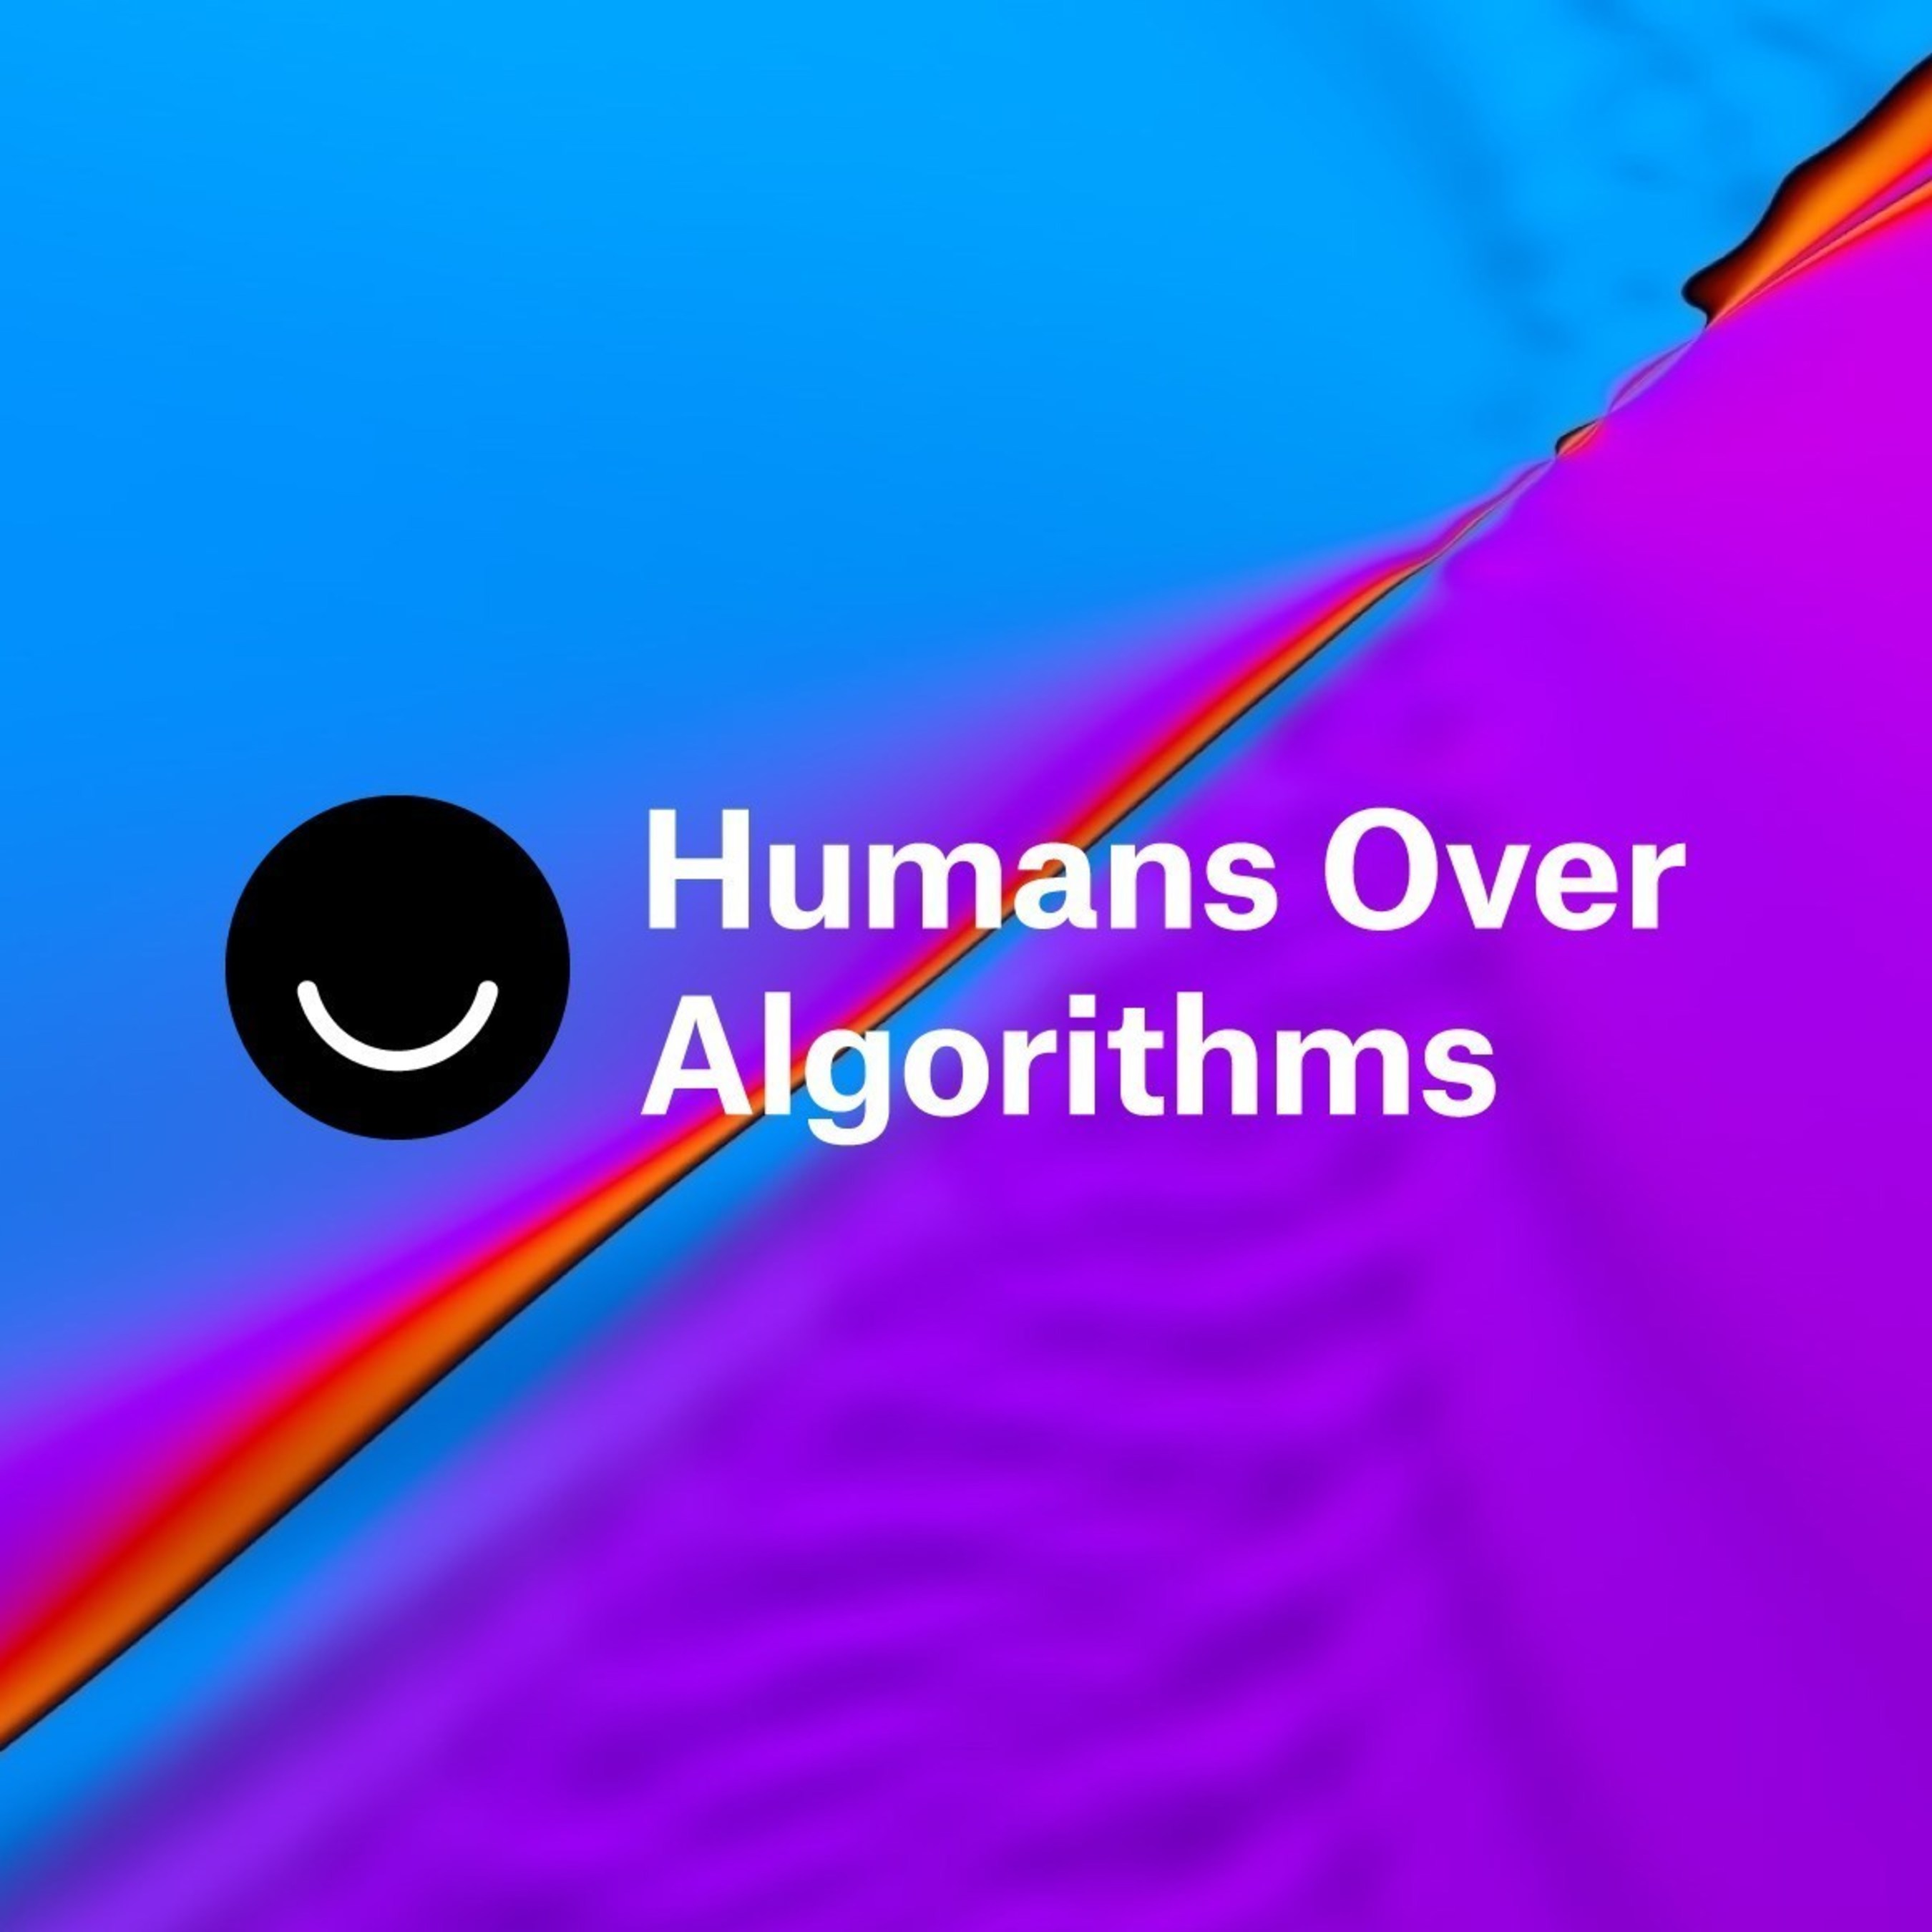 The Value of Values - Why Ello matters today more than ever